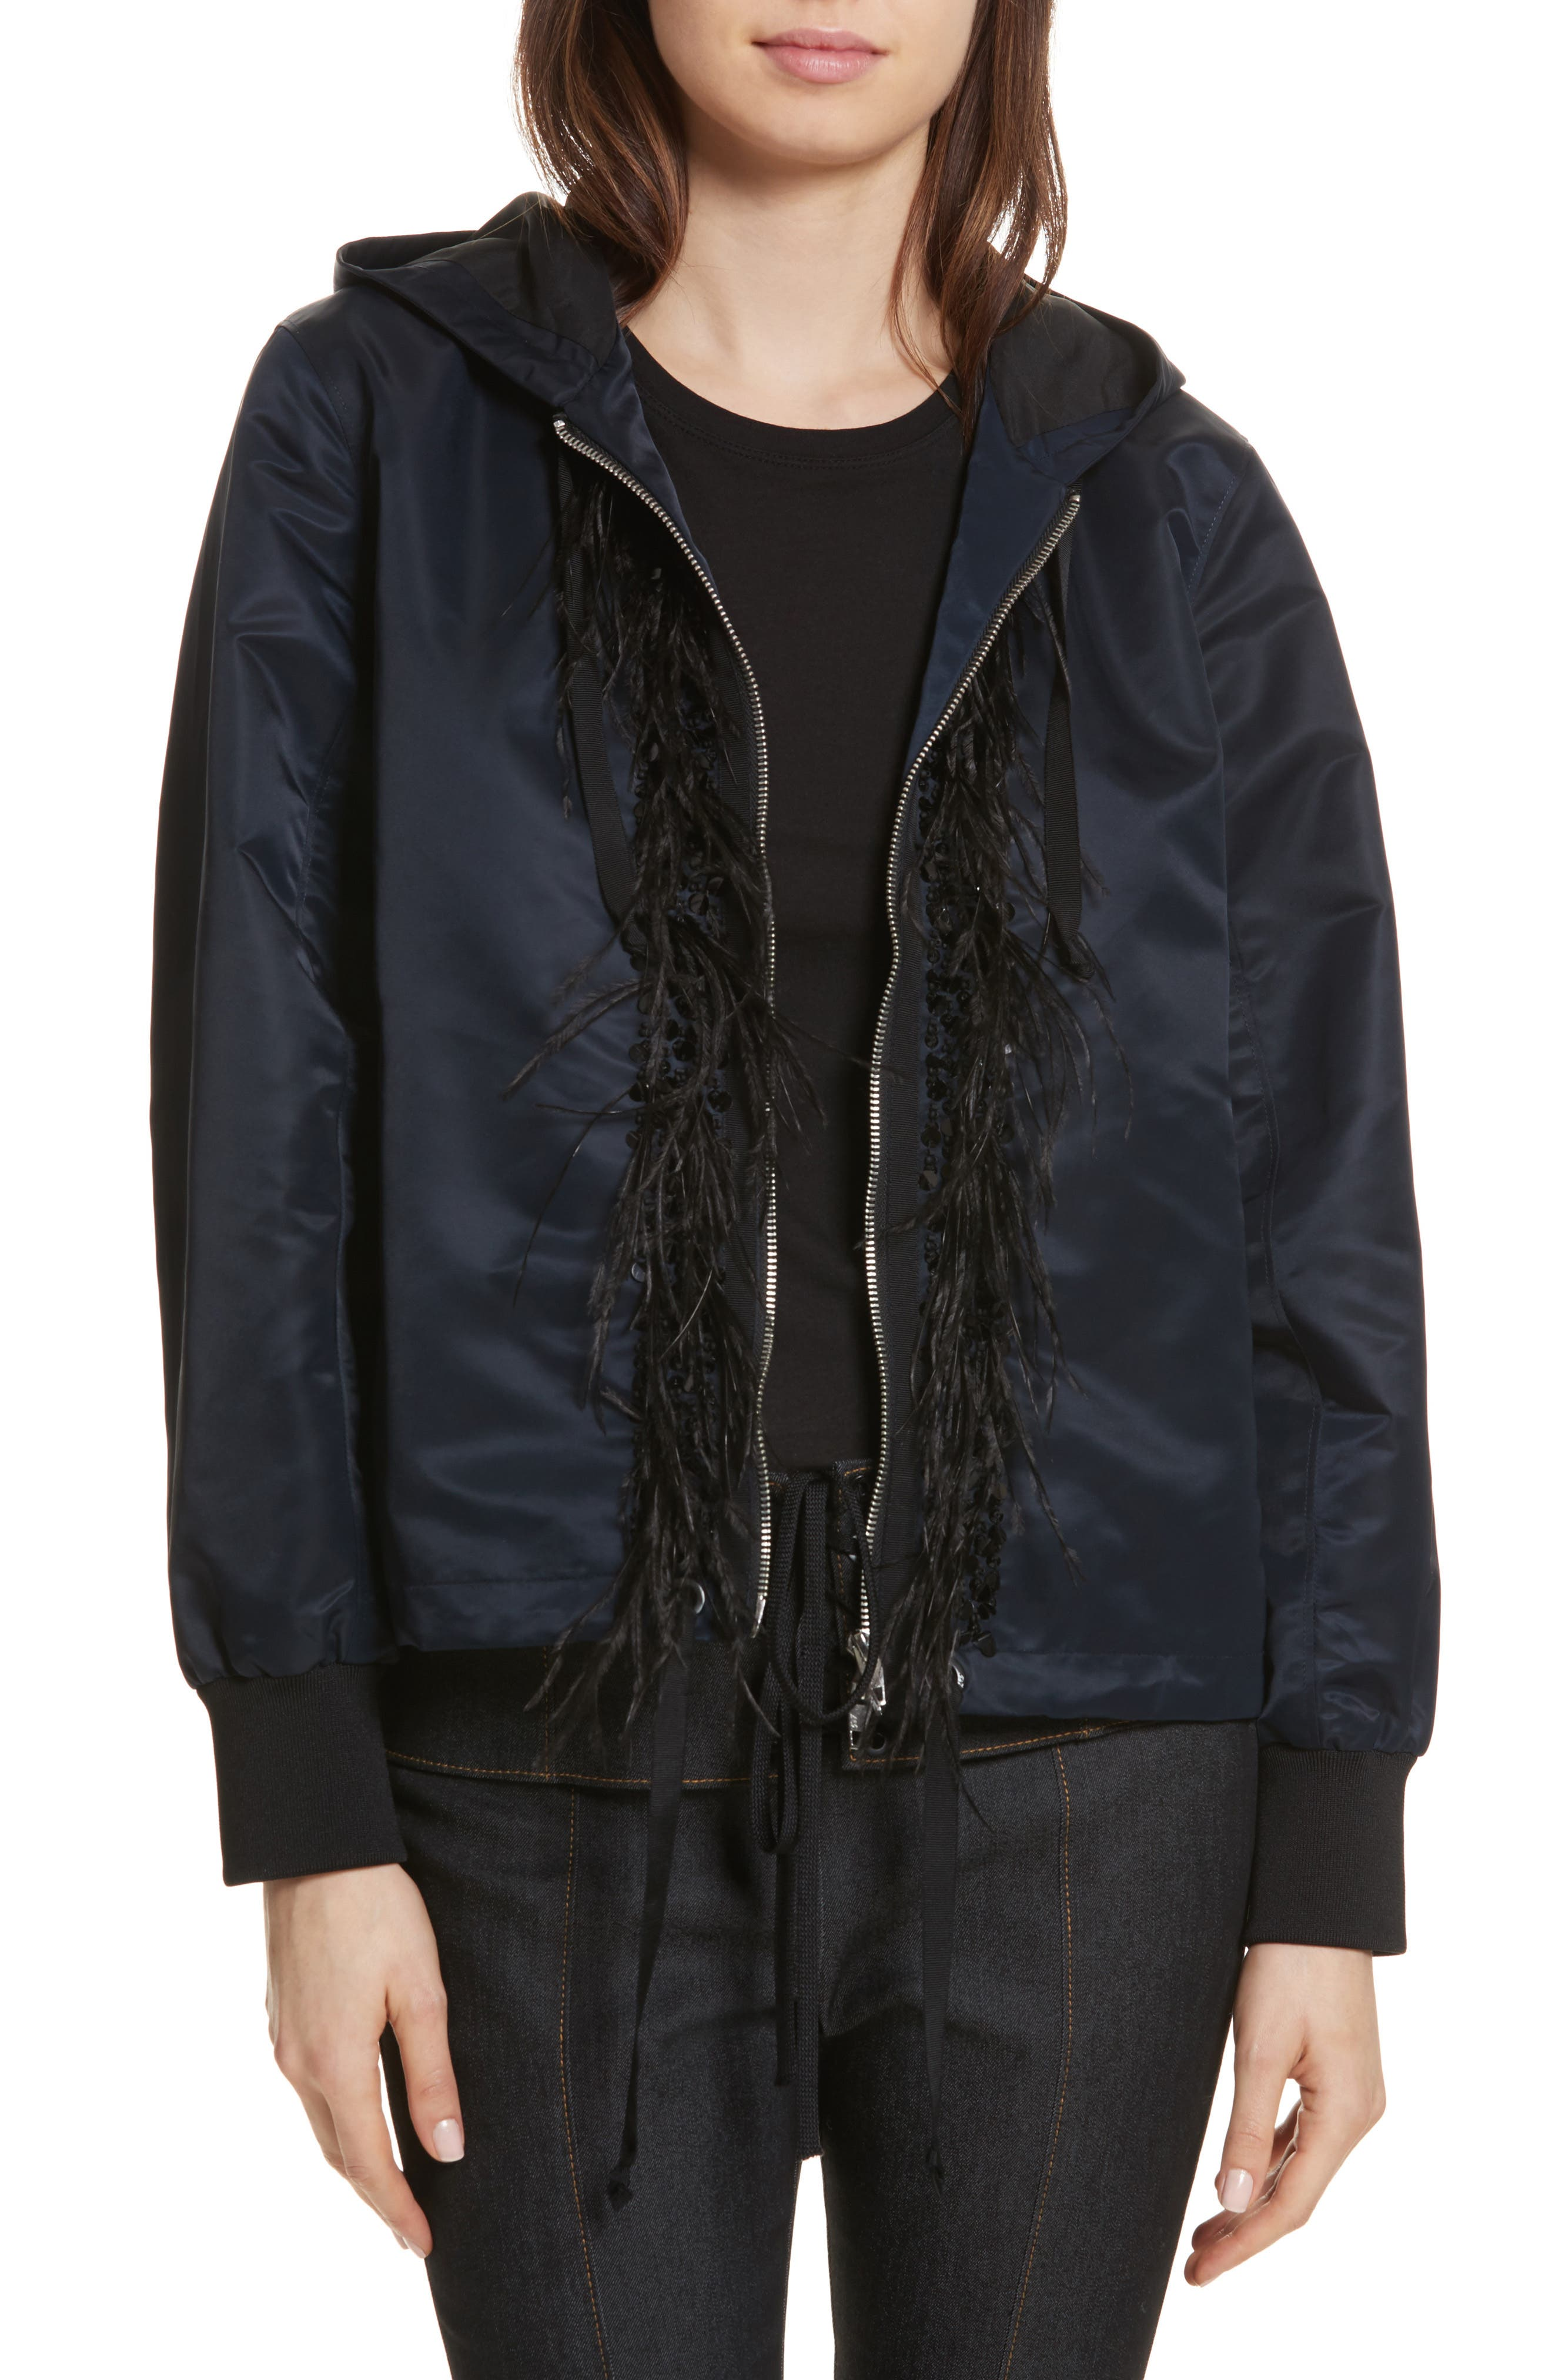 Collette Hooded Feather Trim Jacket,                         Main,                         color, Navy/ Black